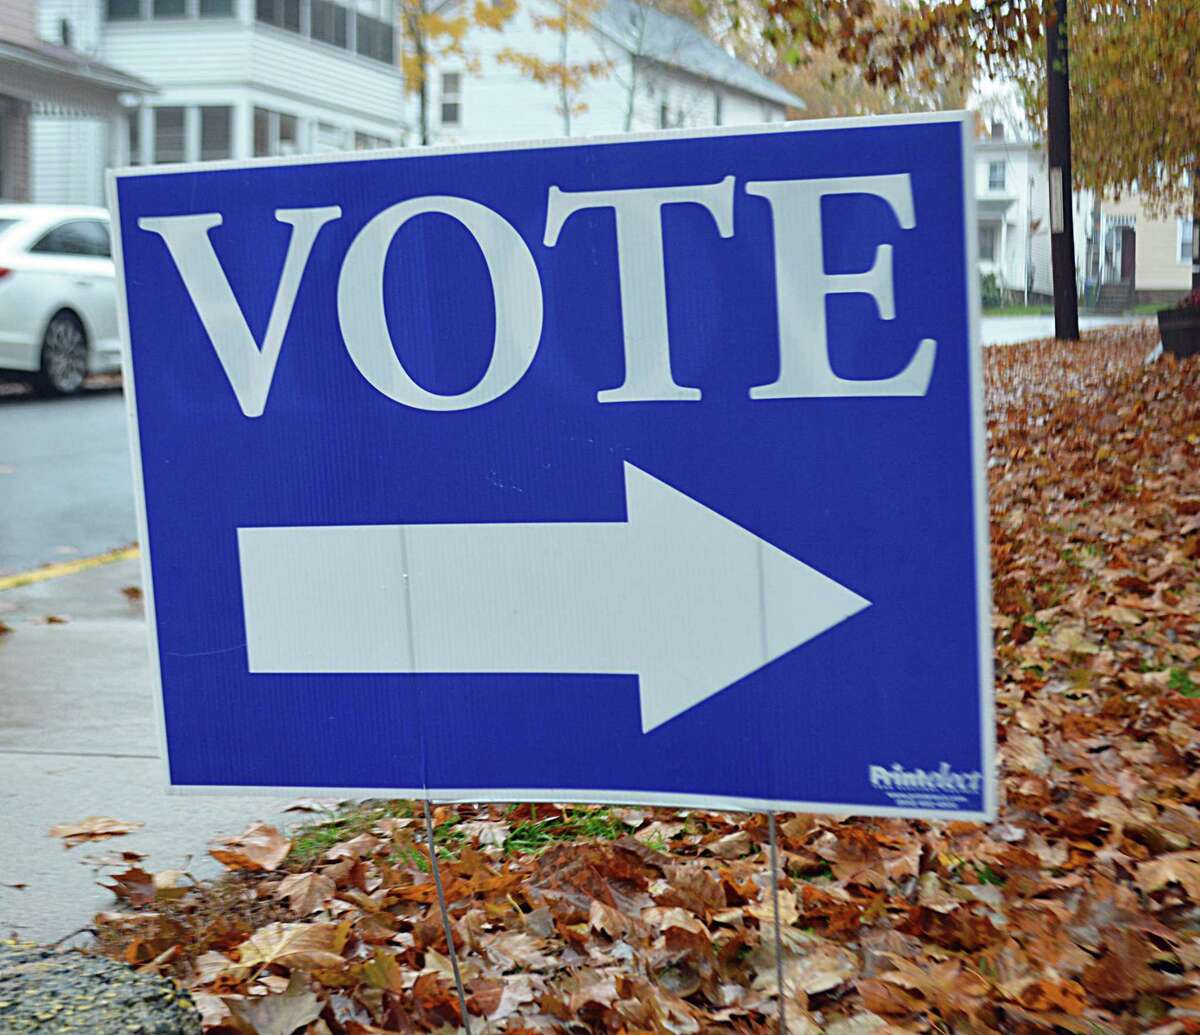 With about 60 people running for election Nov. 5 between two Democratic slates and the Republican roster, residents will be selecting among a diverse pool of political hopefuls. Here, a voting sign directs people to the Macdonough Elementary School gymnasium in Middletown.